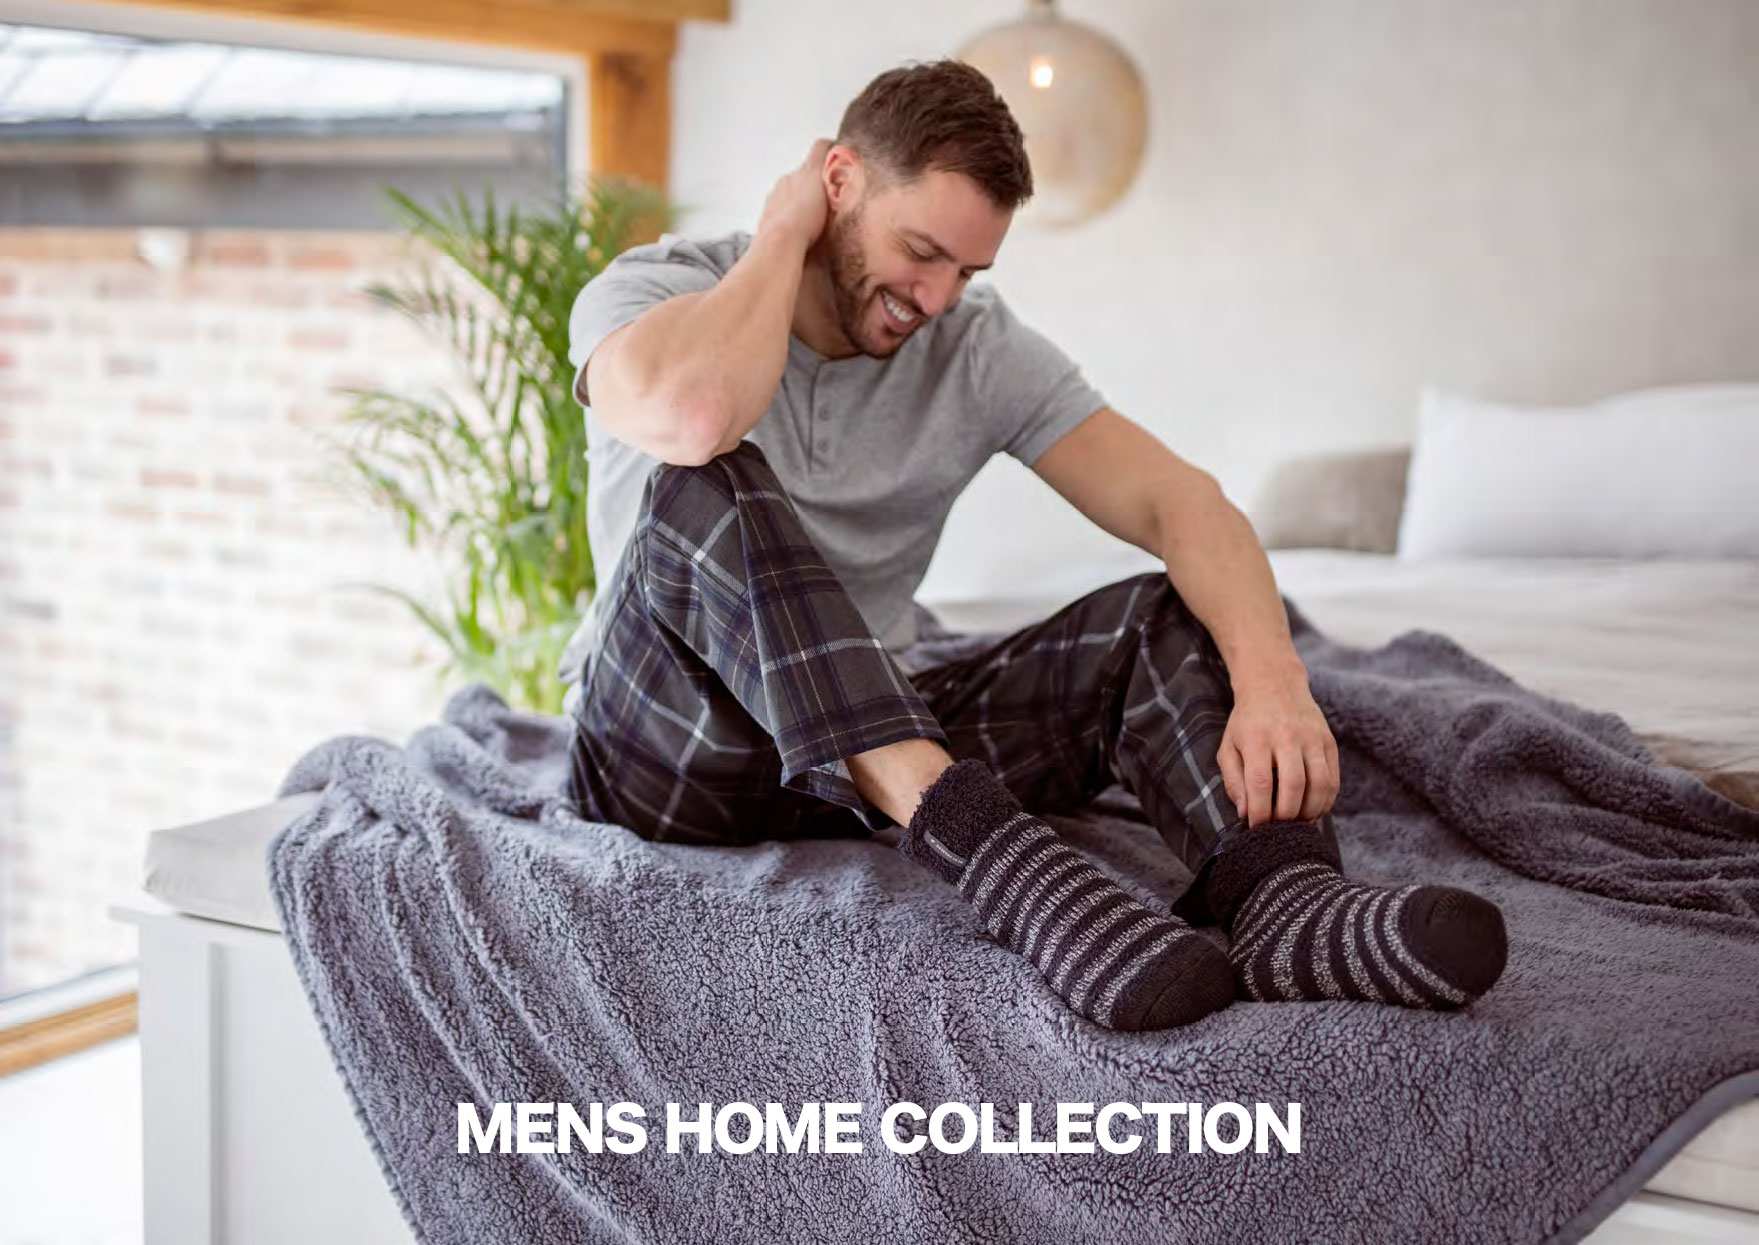 Lady's home  socks collection